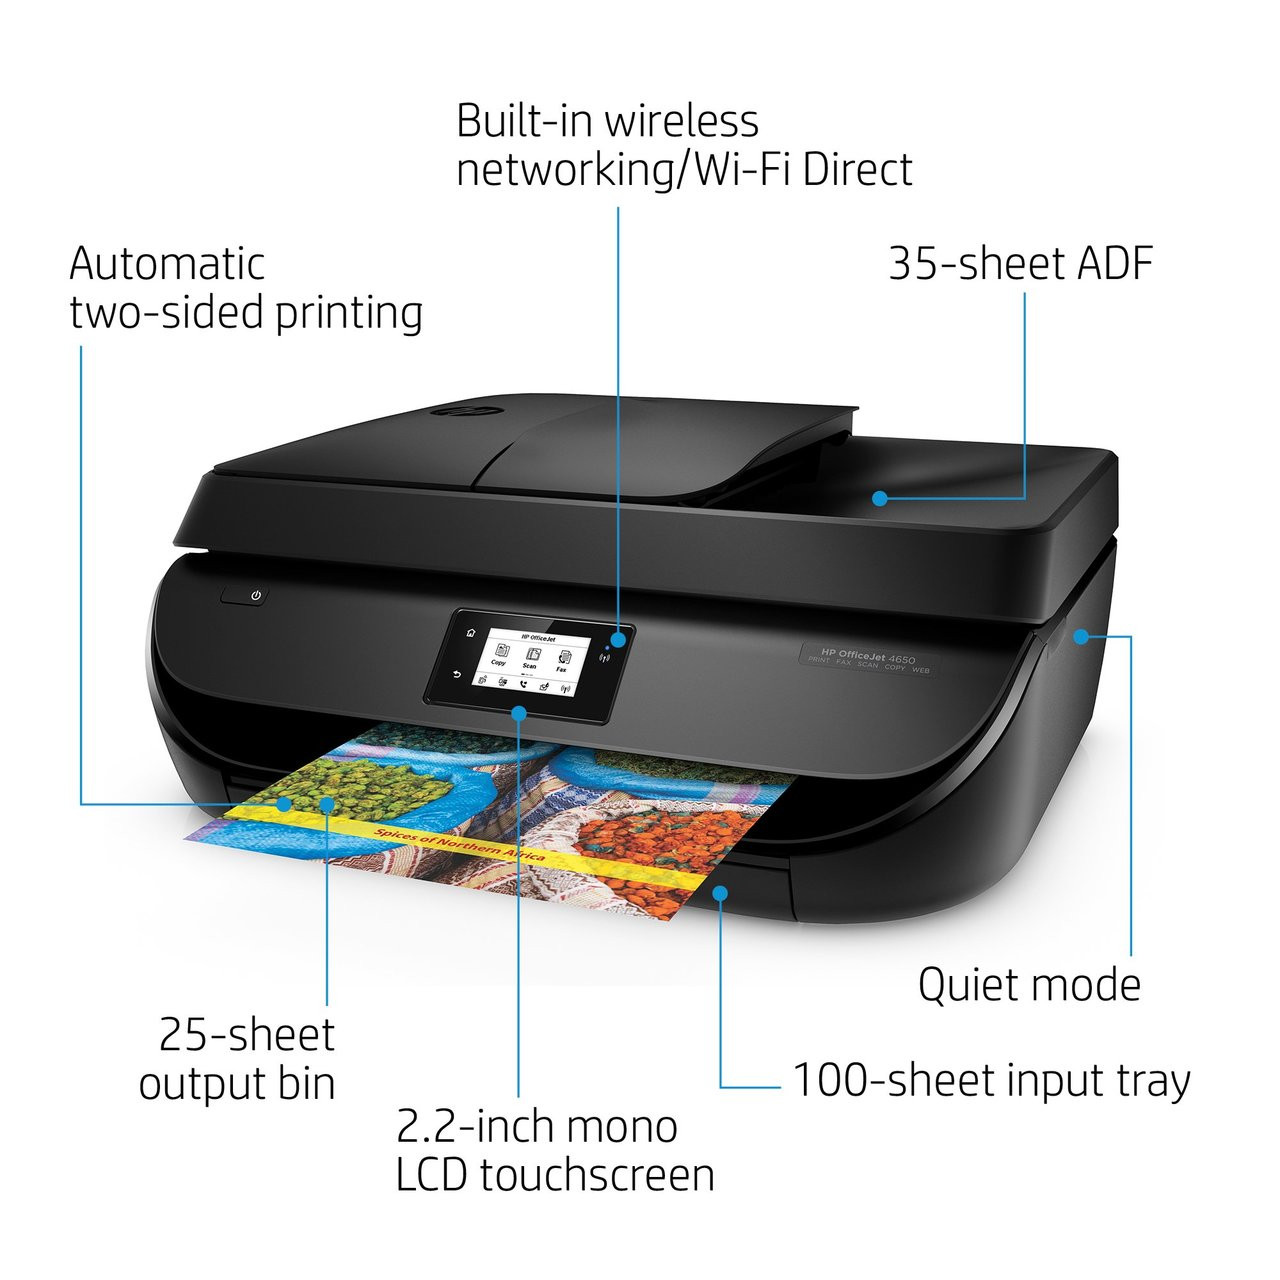 HP OfficeJet 4650 Wireless All-in-One Photo Printer in Black (Certified  Refurbished)